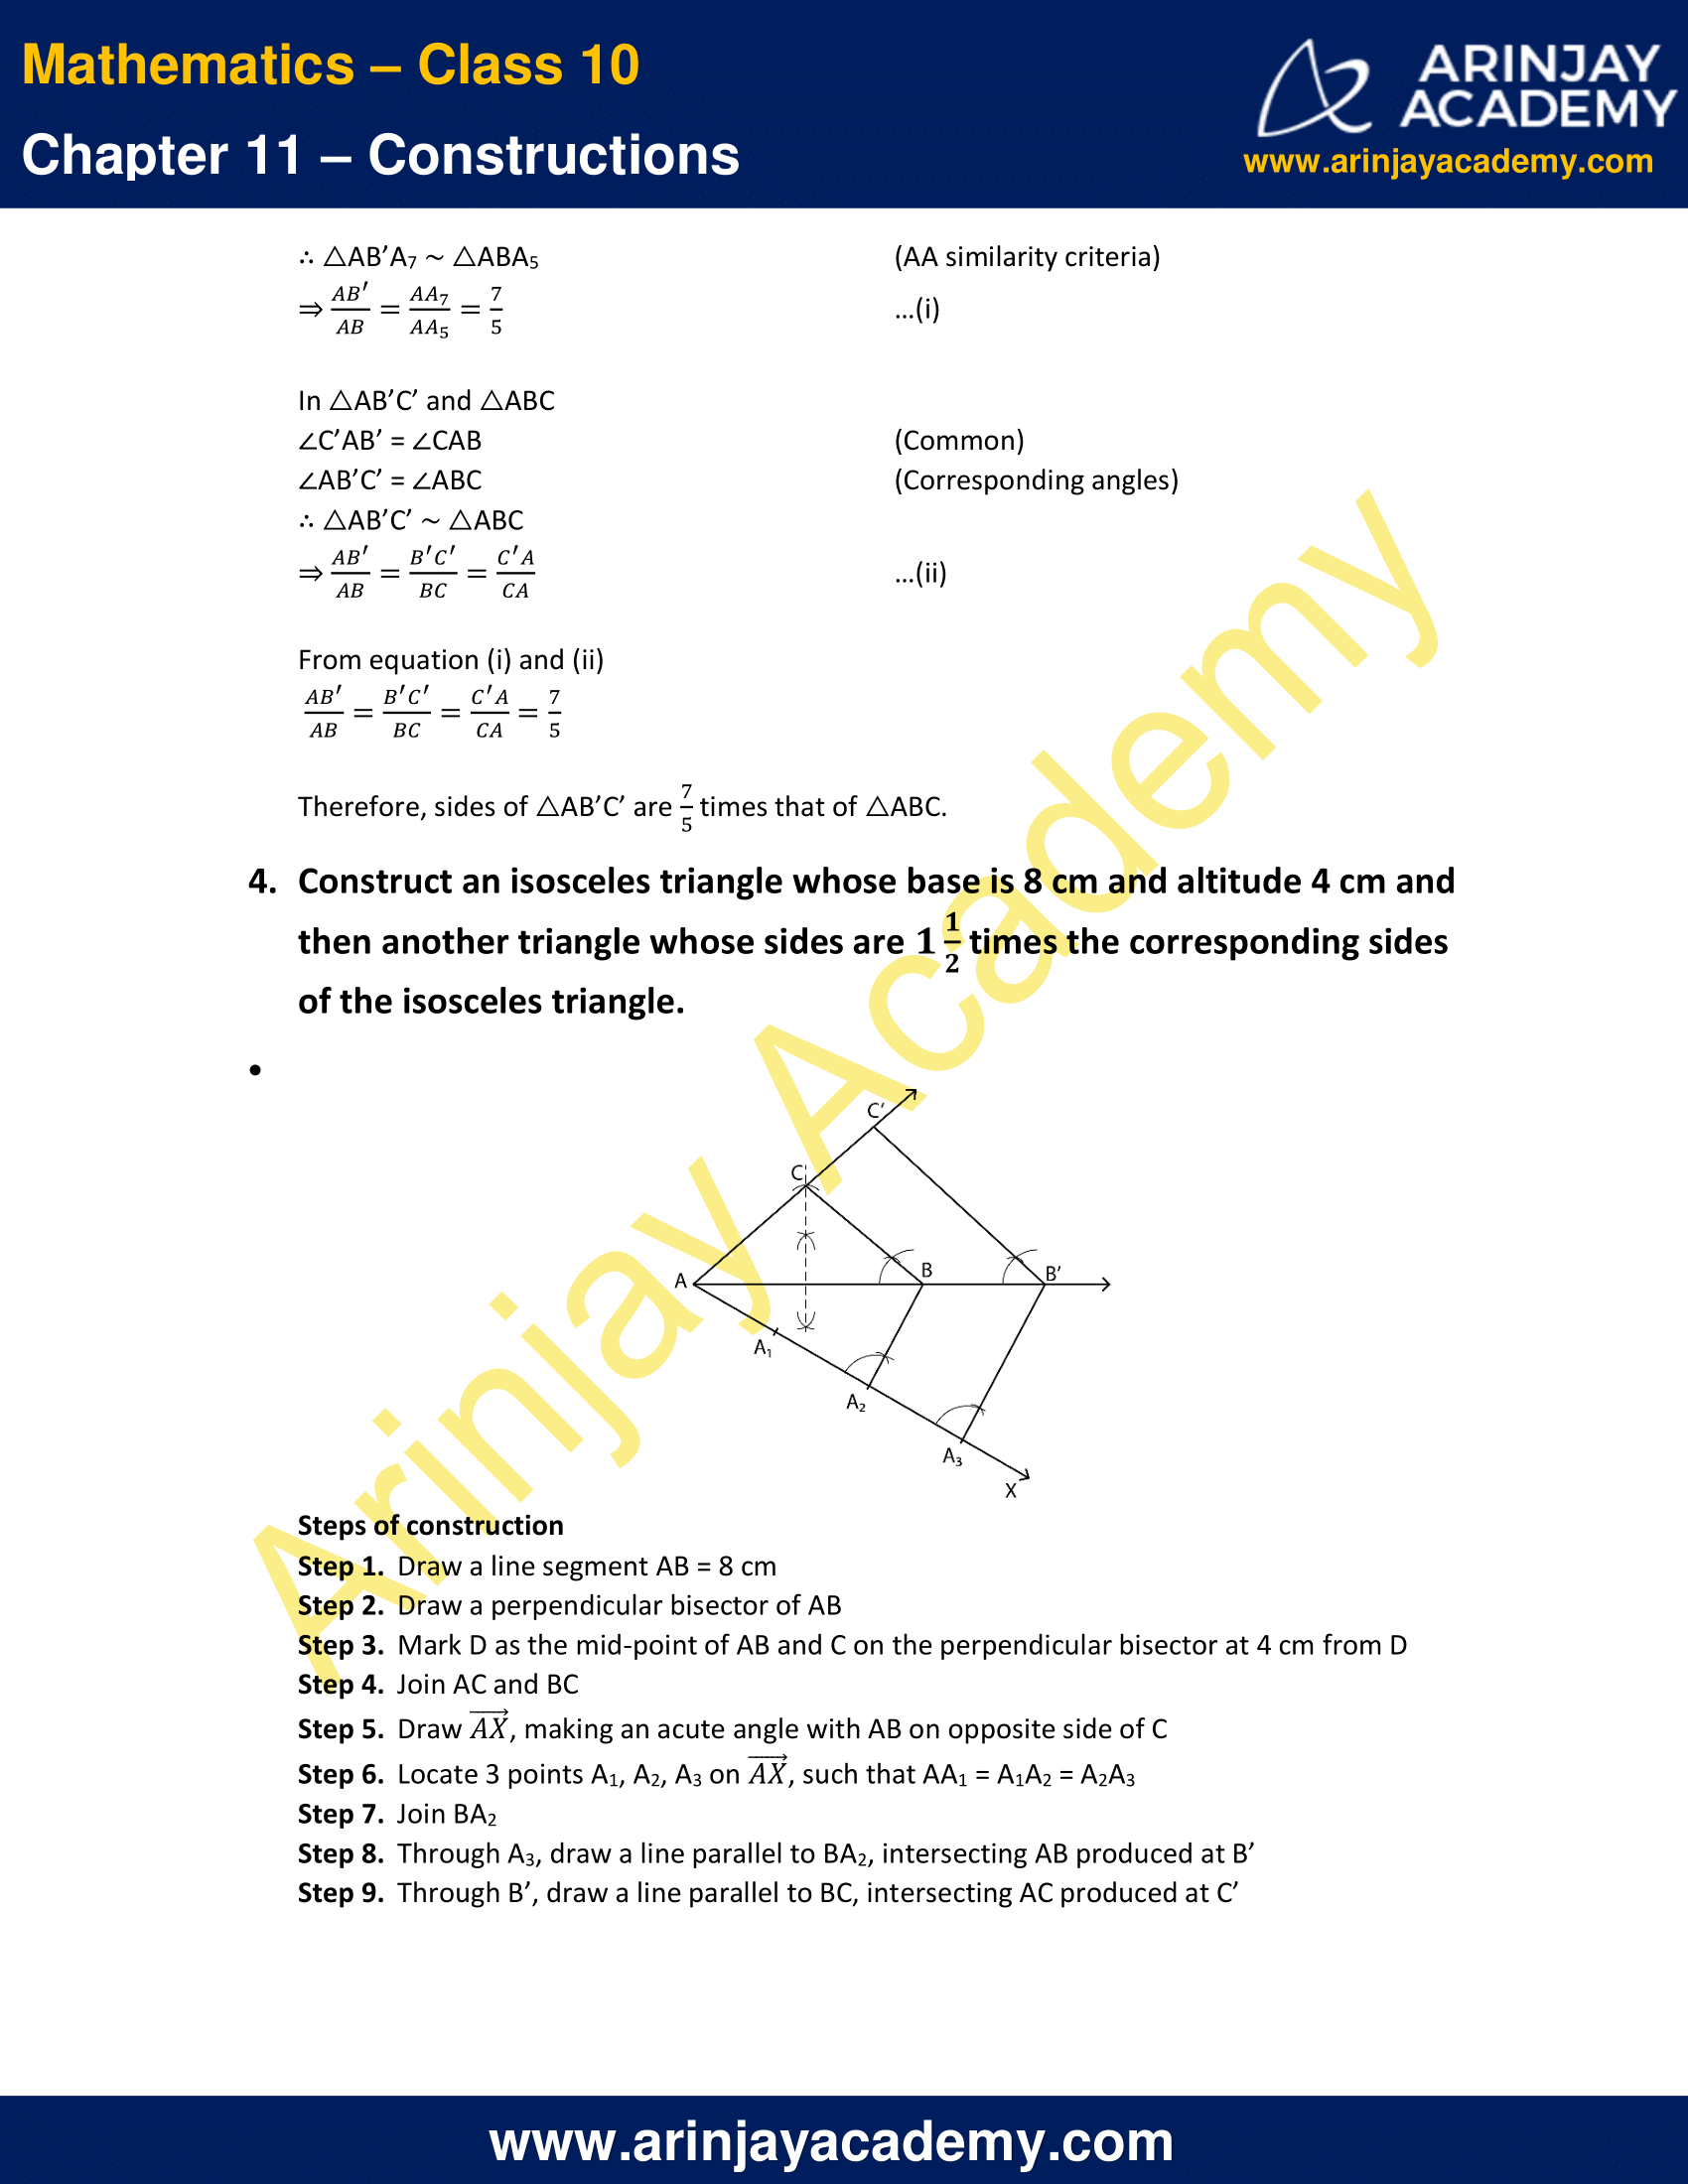 NCERT Solutions For Class 10 Maths Chapter 11 Exercise 11.1 image 4